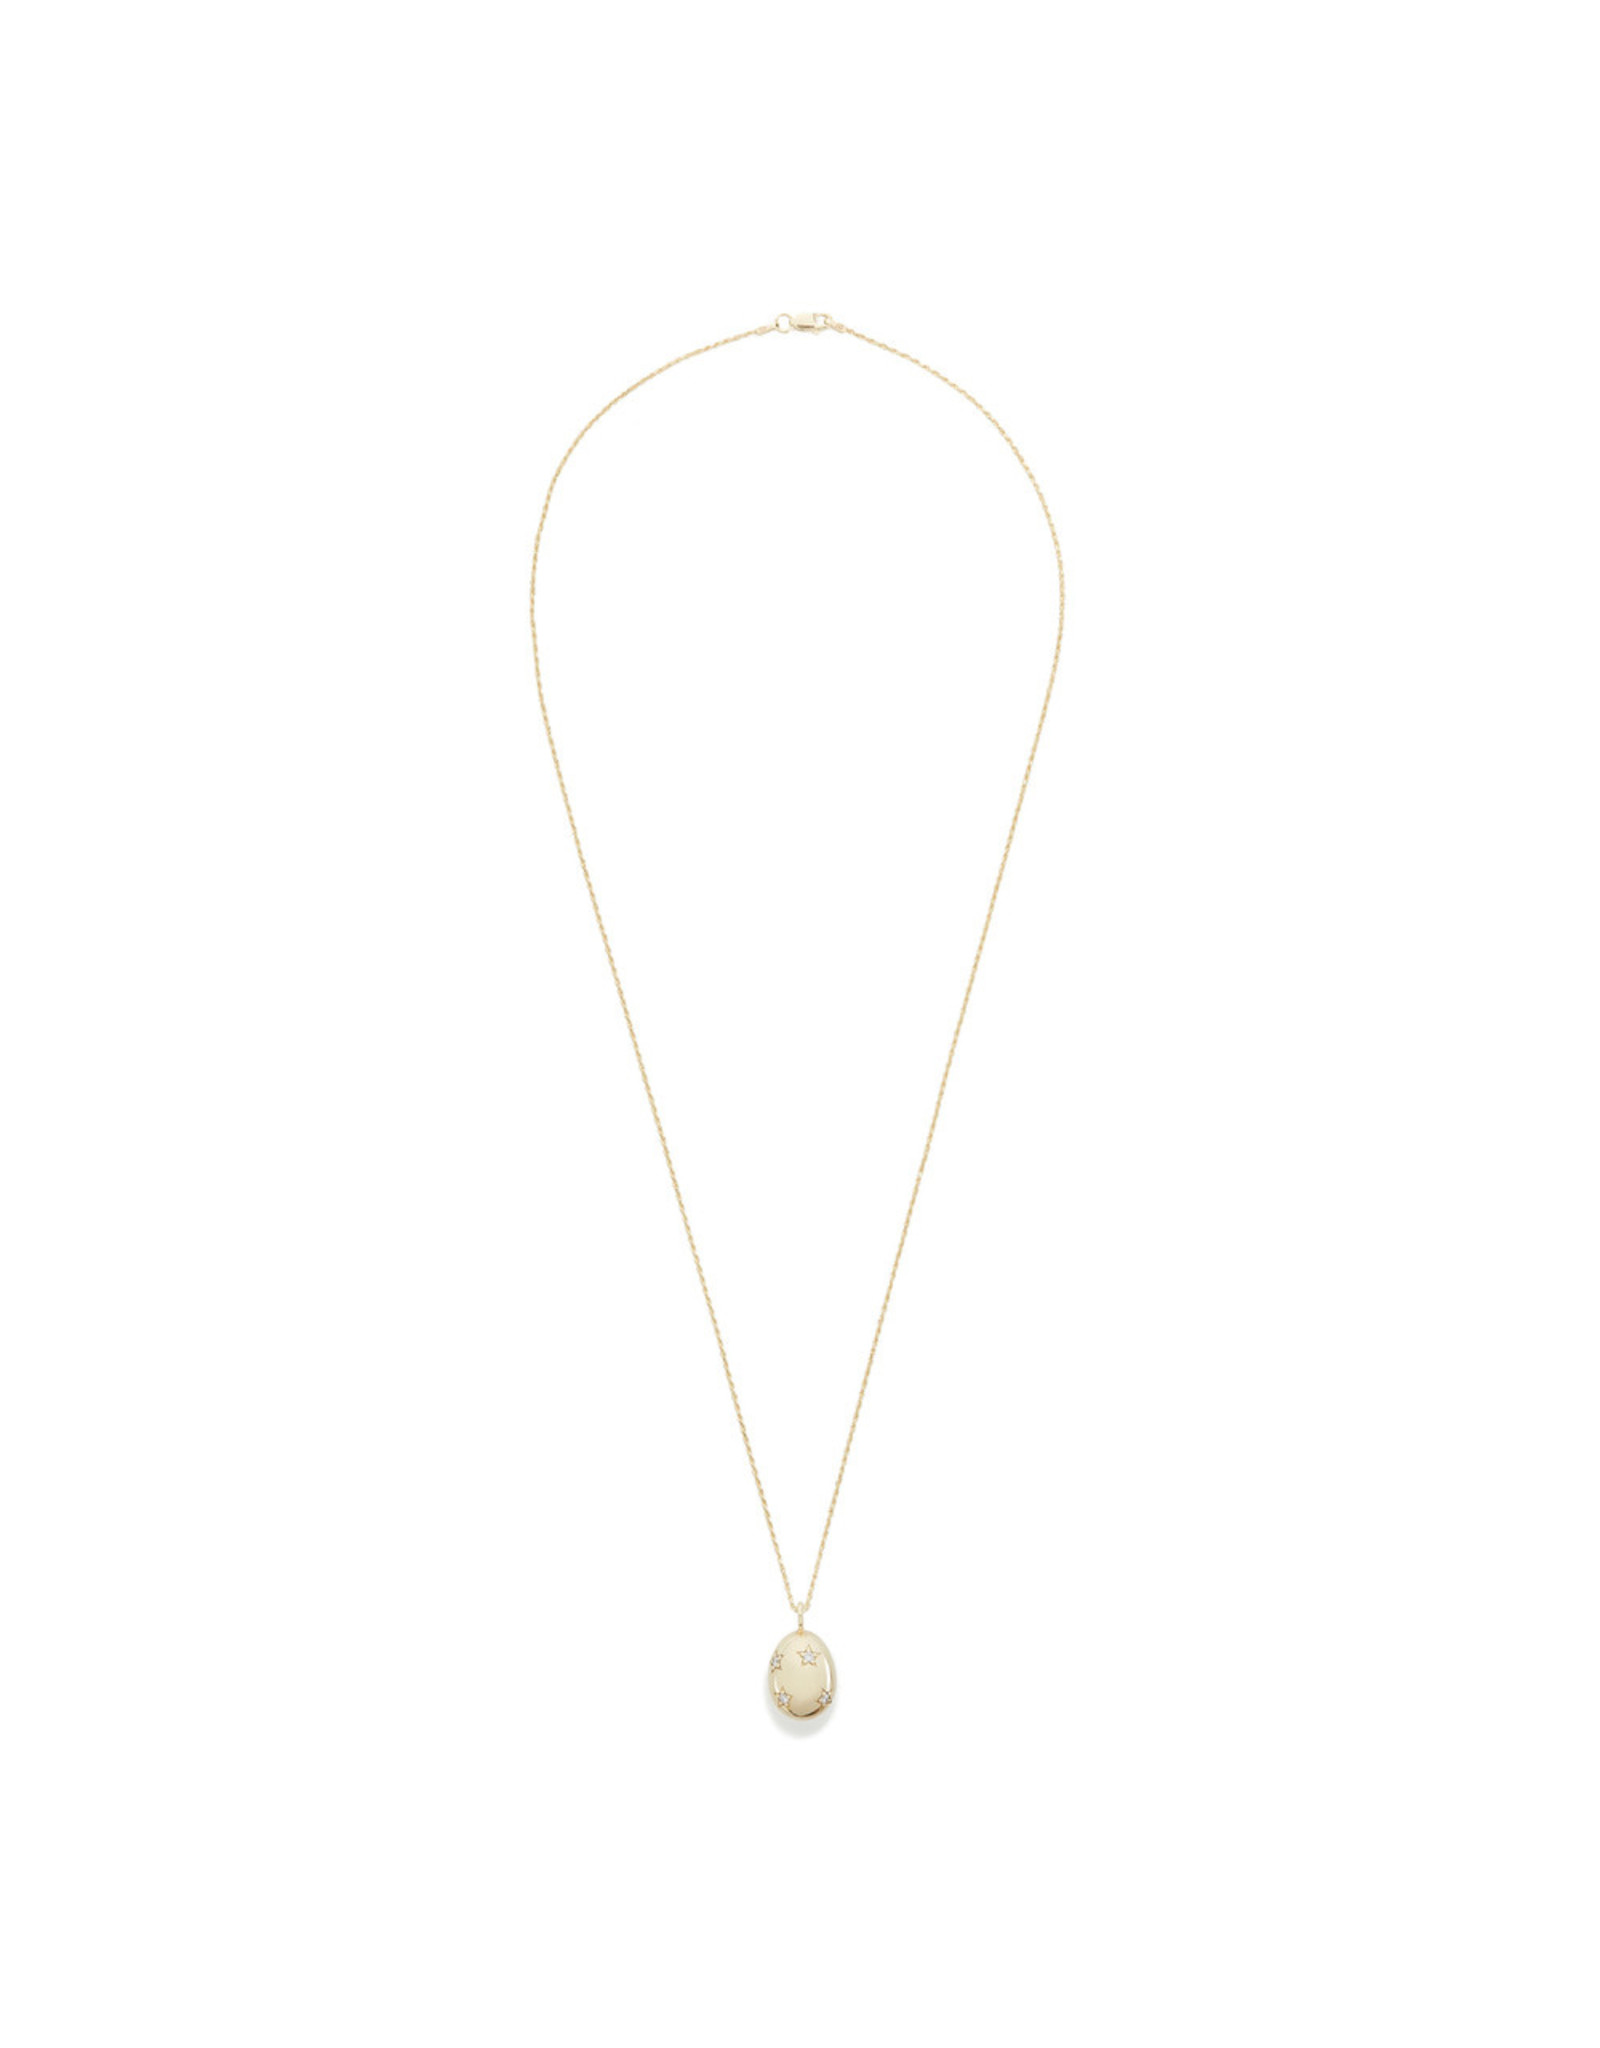 Ariel Gordon Ariel Gordon Golden Goose Pavé Pendant (Color: Yellow Gold)